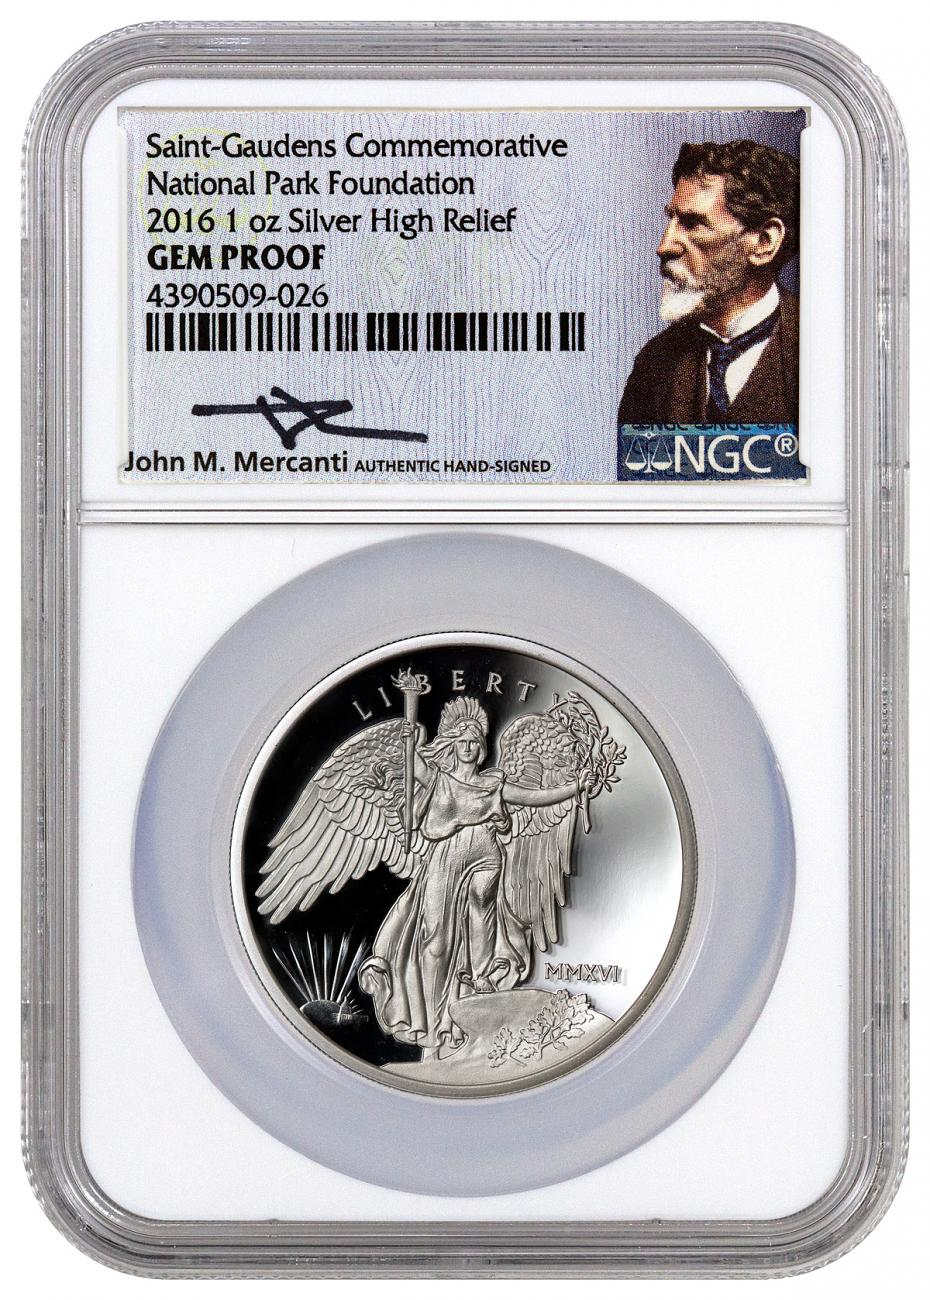 2016 1 oz. High Relief Proof Silver Saint Gaudens - Winged Liberty - NGC Gem Proof (Mercanti Signed Label)